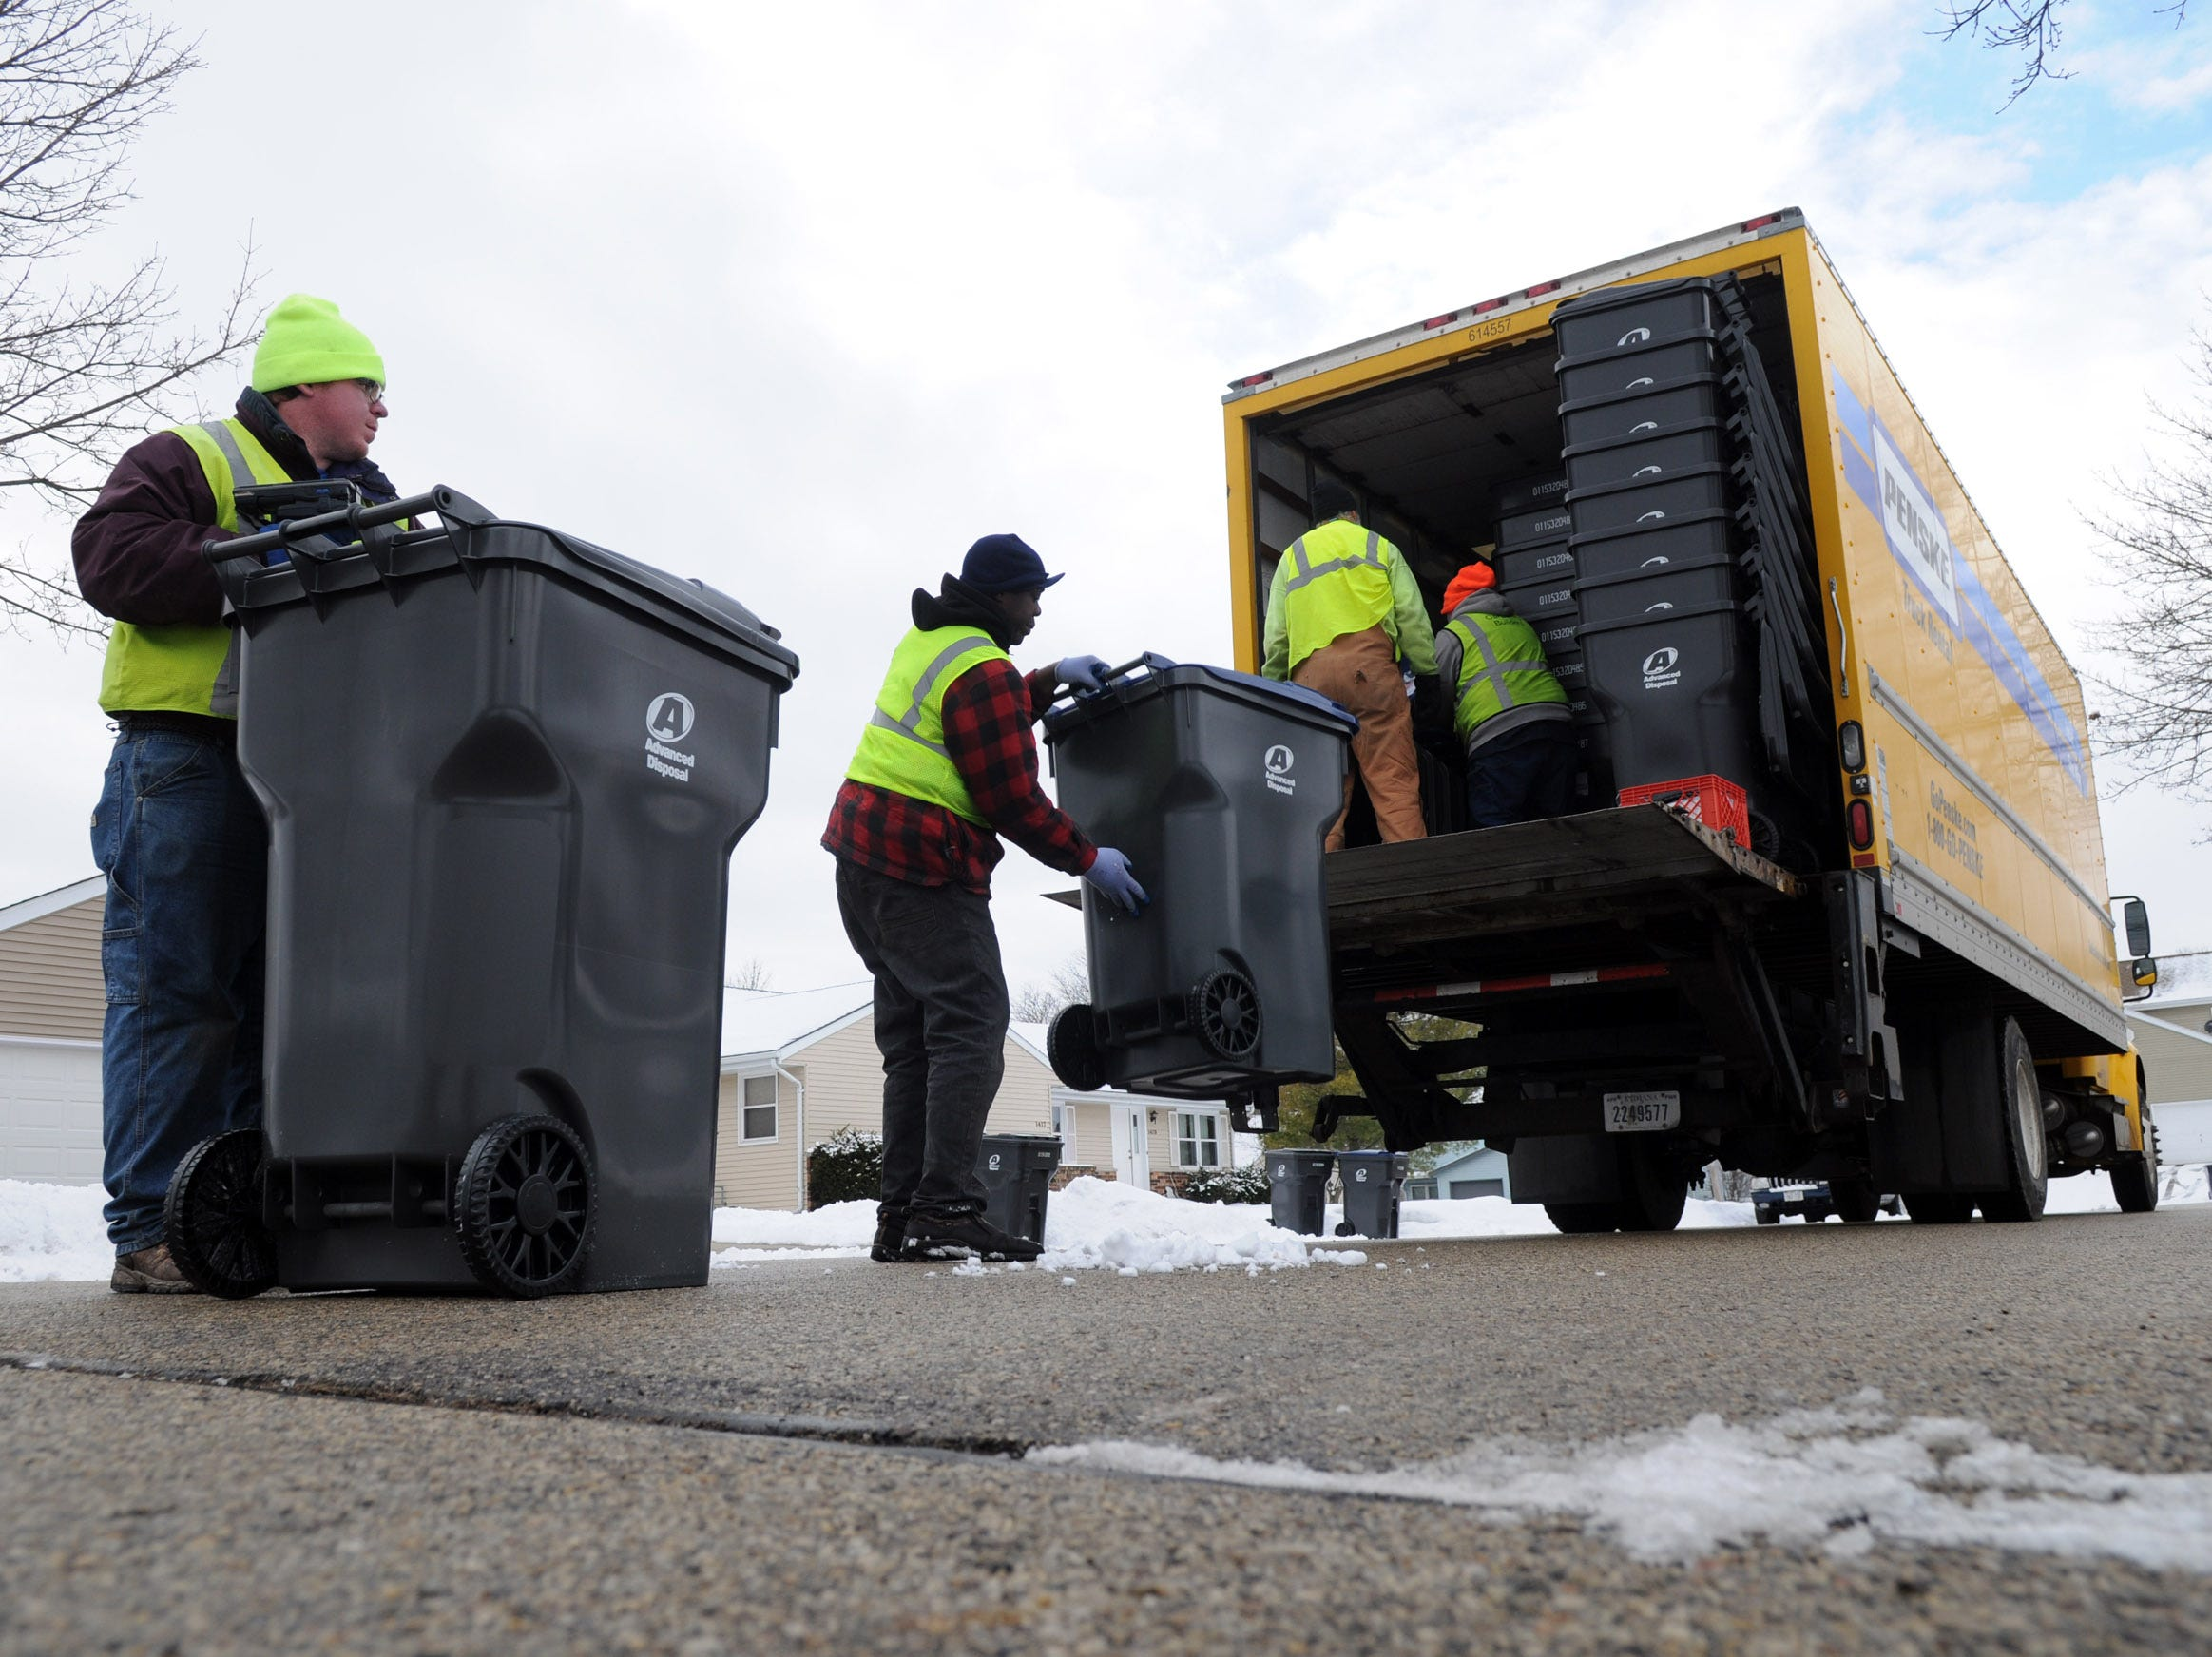 Advanced Disposal crews unload a truck with garbage and recycling bins on American Avenue in Waukesha in January 2015.